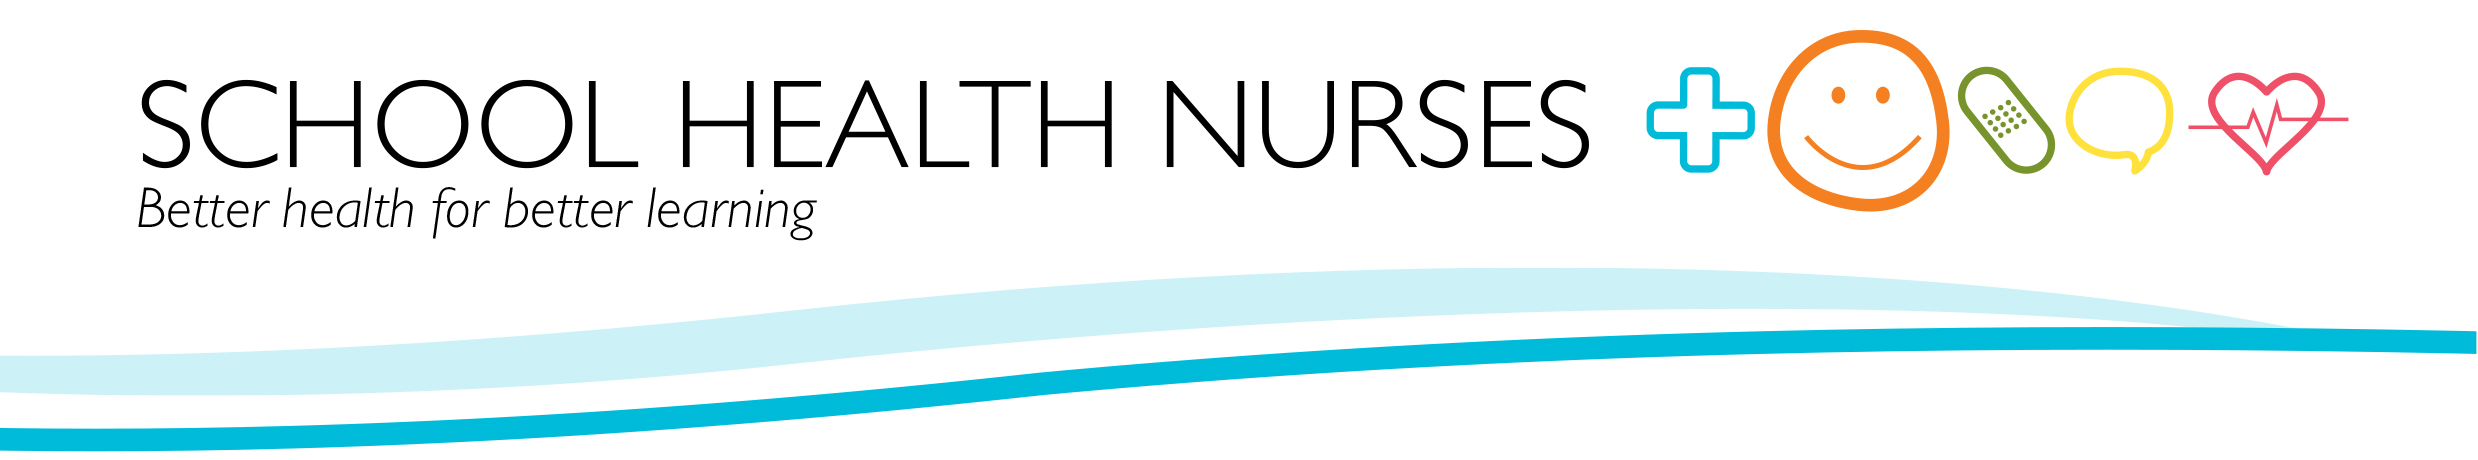 School Health Nurse Programme banner